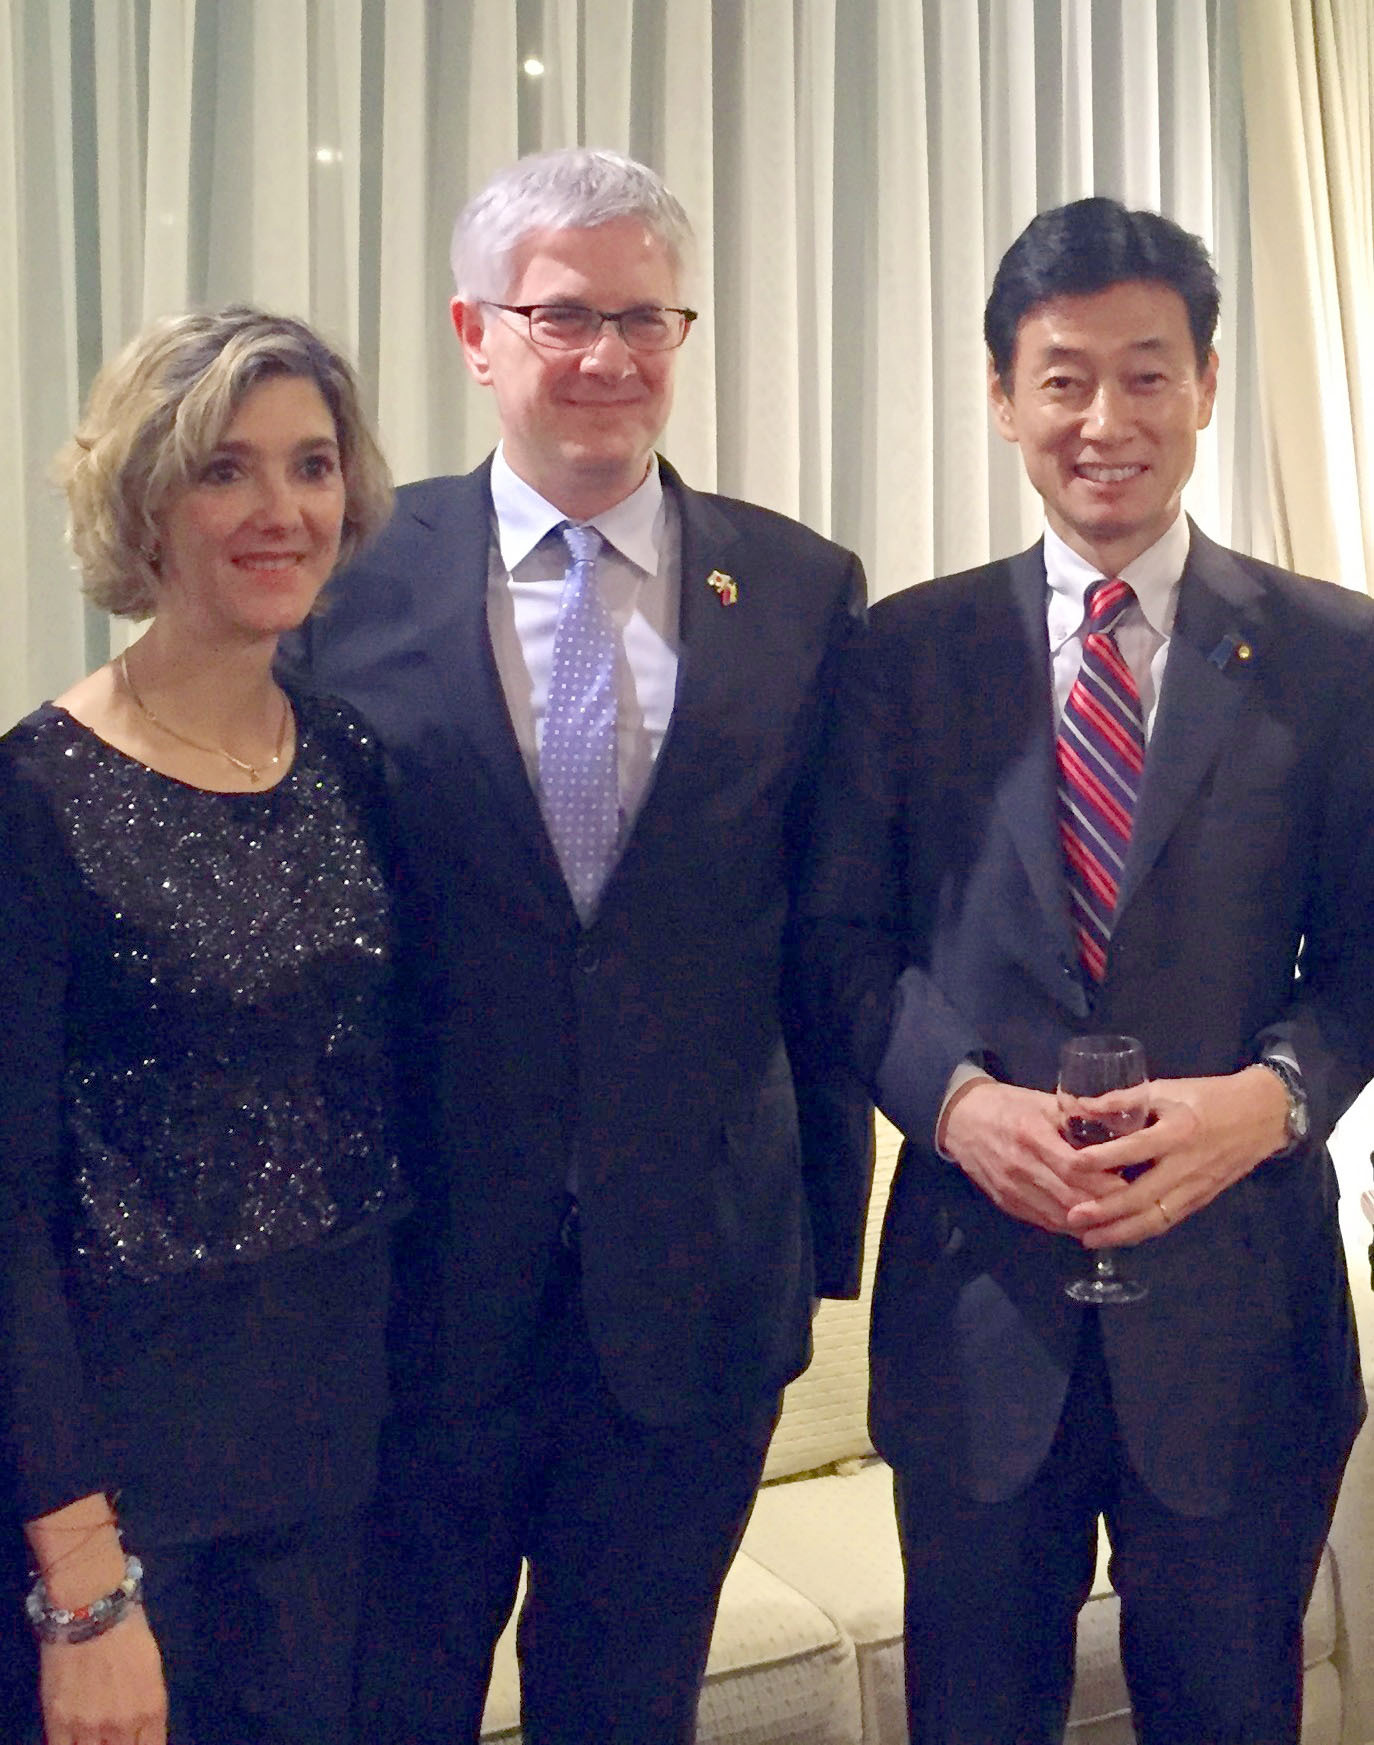 Colombian Vice Minister of Foreign Affairs Patti Londono (left) poses with Colombia's Ambassador Gabriel Duque and Vice President of the Colombia-Japan Parliamentary Friendship League Yasutoshi Nishimura at a reception at the embassy in Tokyo on Feb. 28. | COLOMBIAN EMBASSY